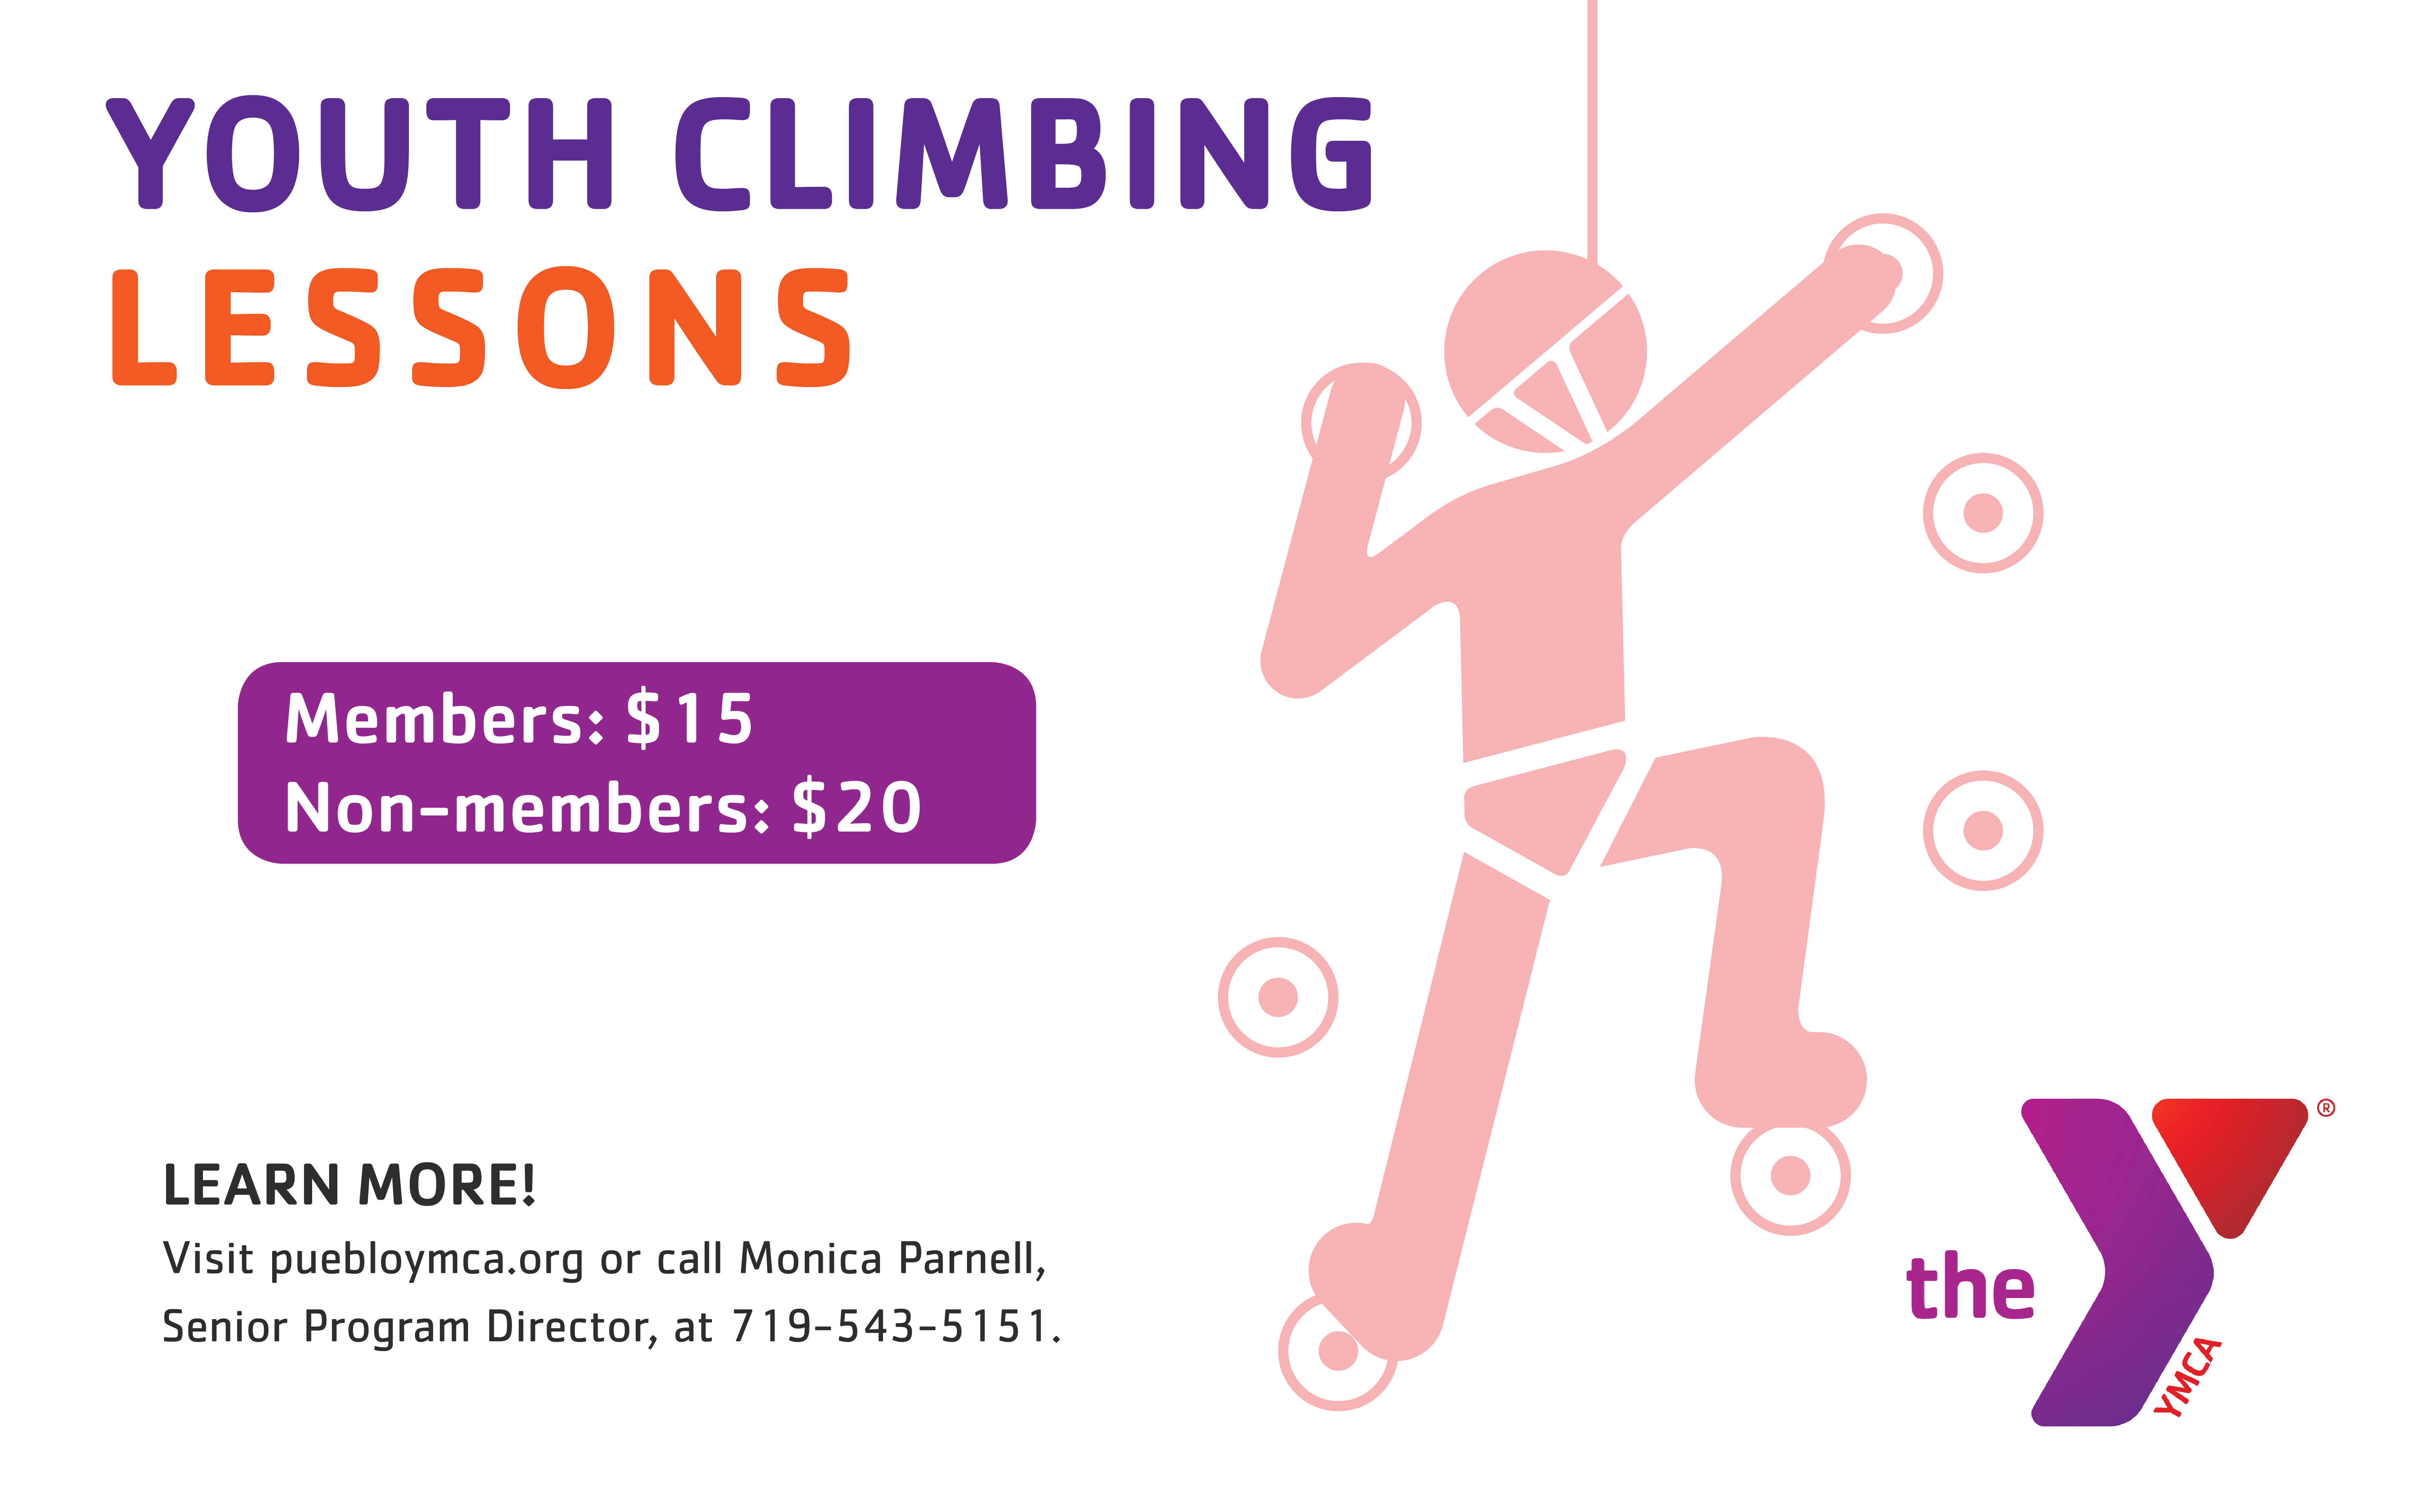 Youth Climbing Lessons